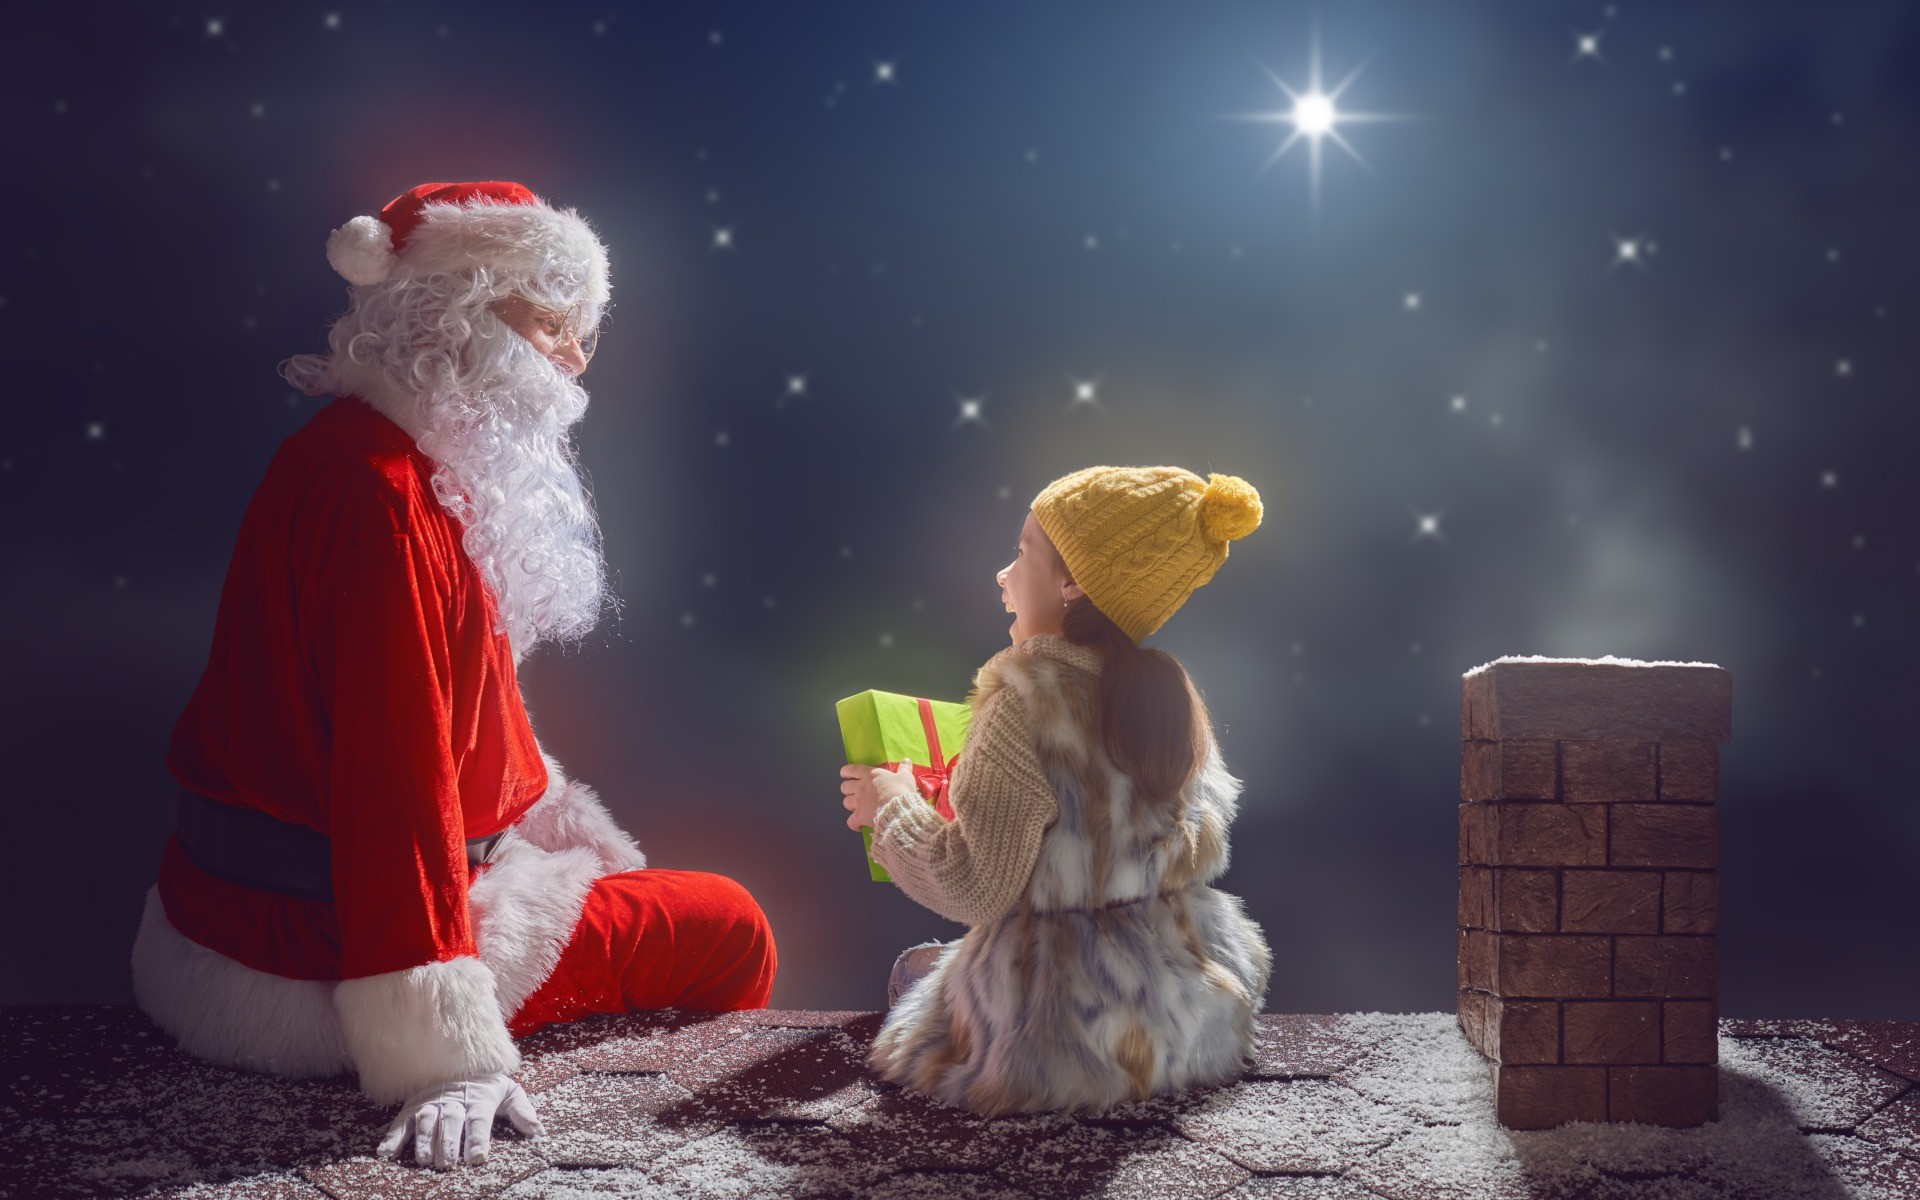 Download wallpaper night, merry christmas, santa claus, New Year,  Christmas, section